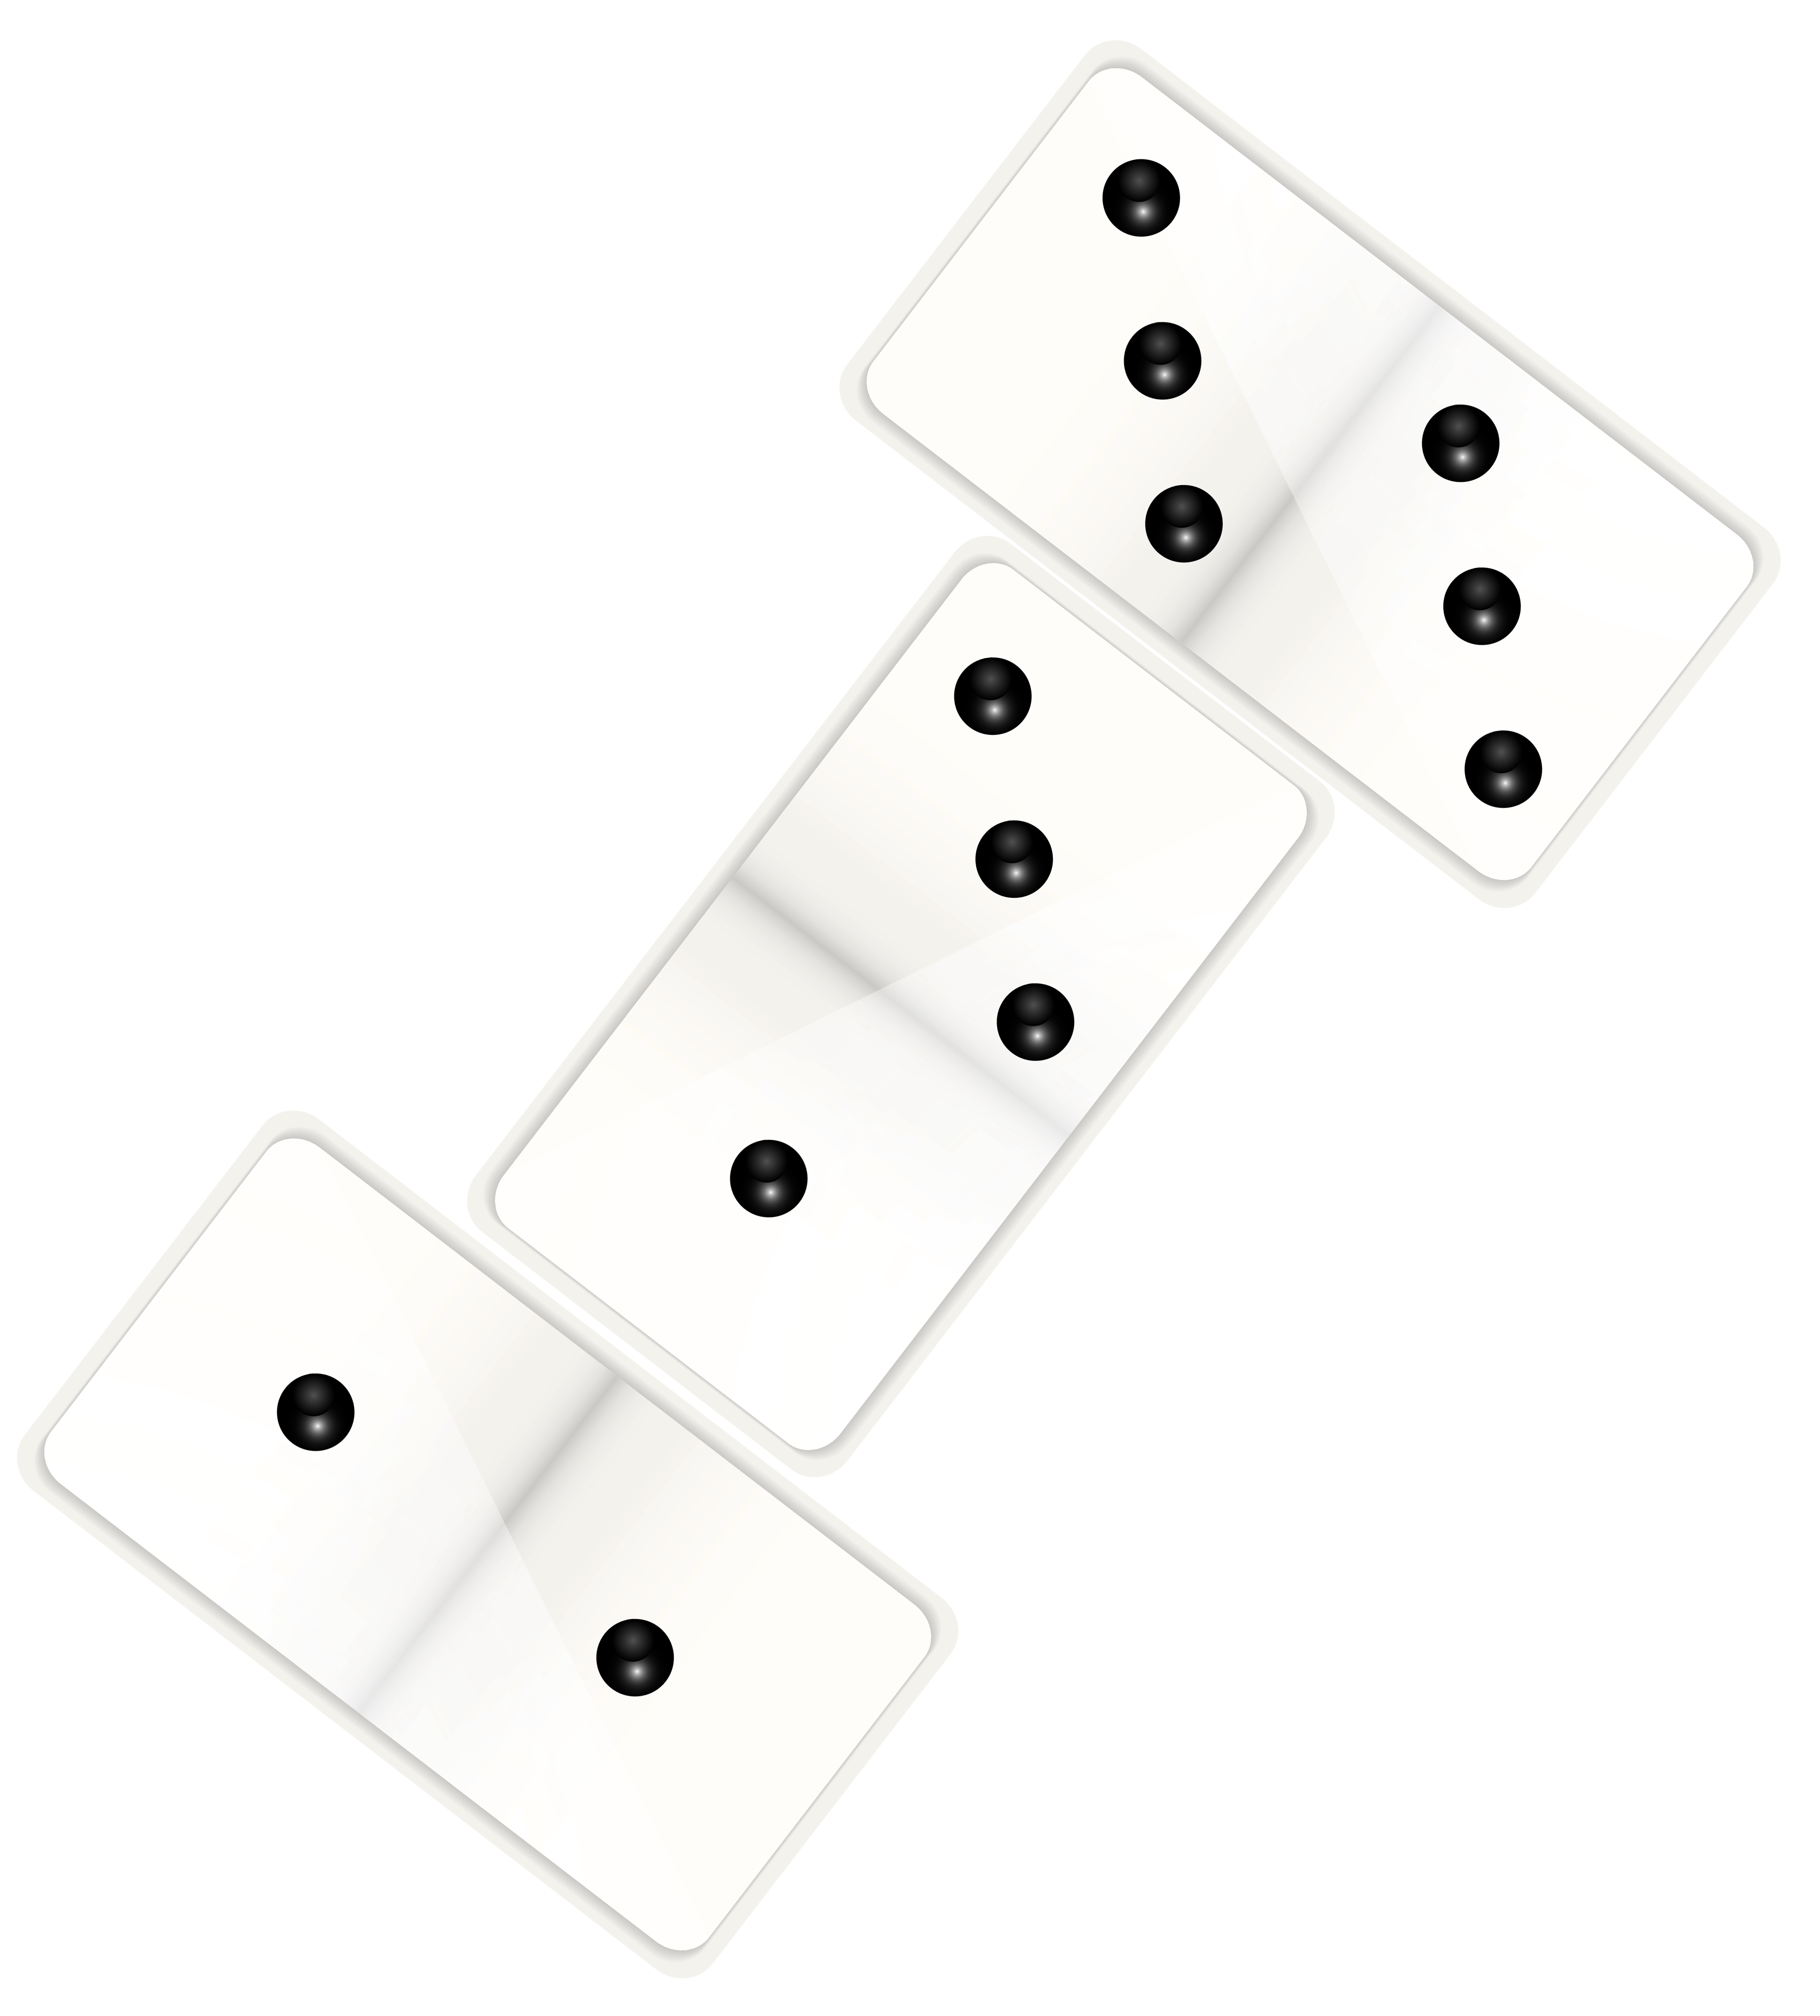 Game clipart portable. Dominoes pieces png best